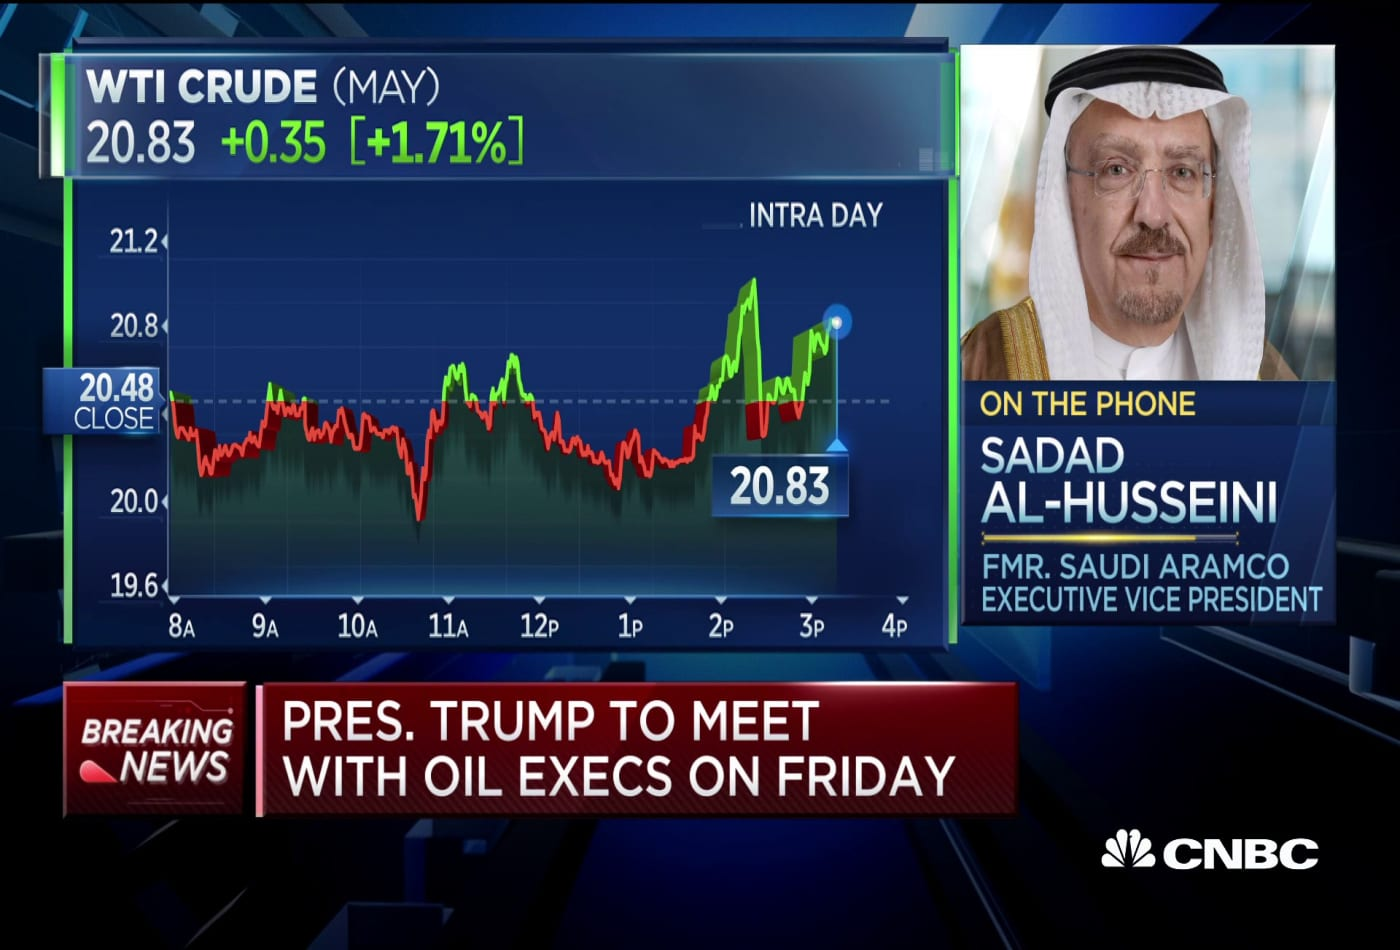 Oil situation likely to endure whole 2nd quarter: Fmr Saudi Aramco executive vice president